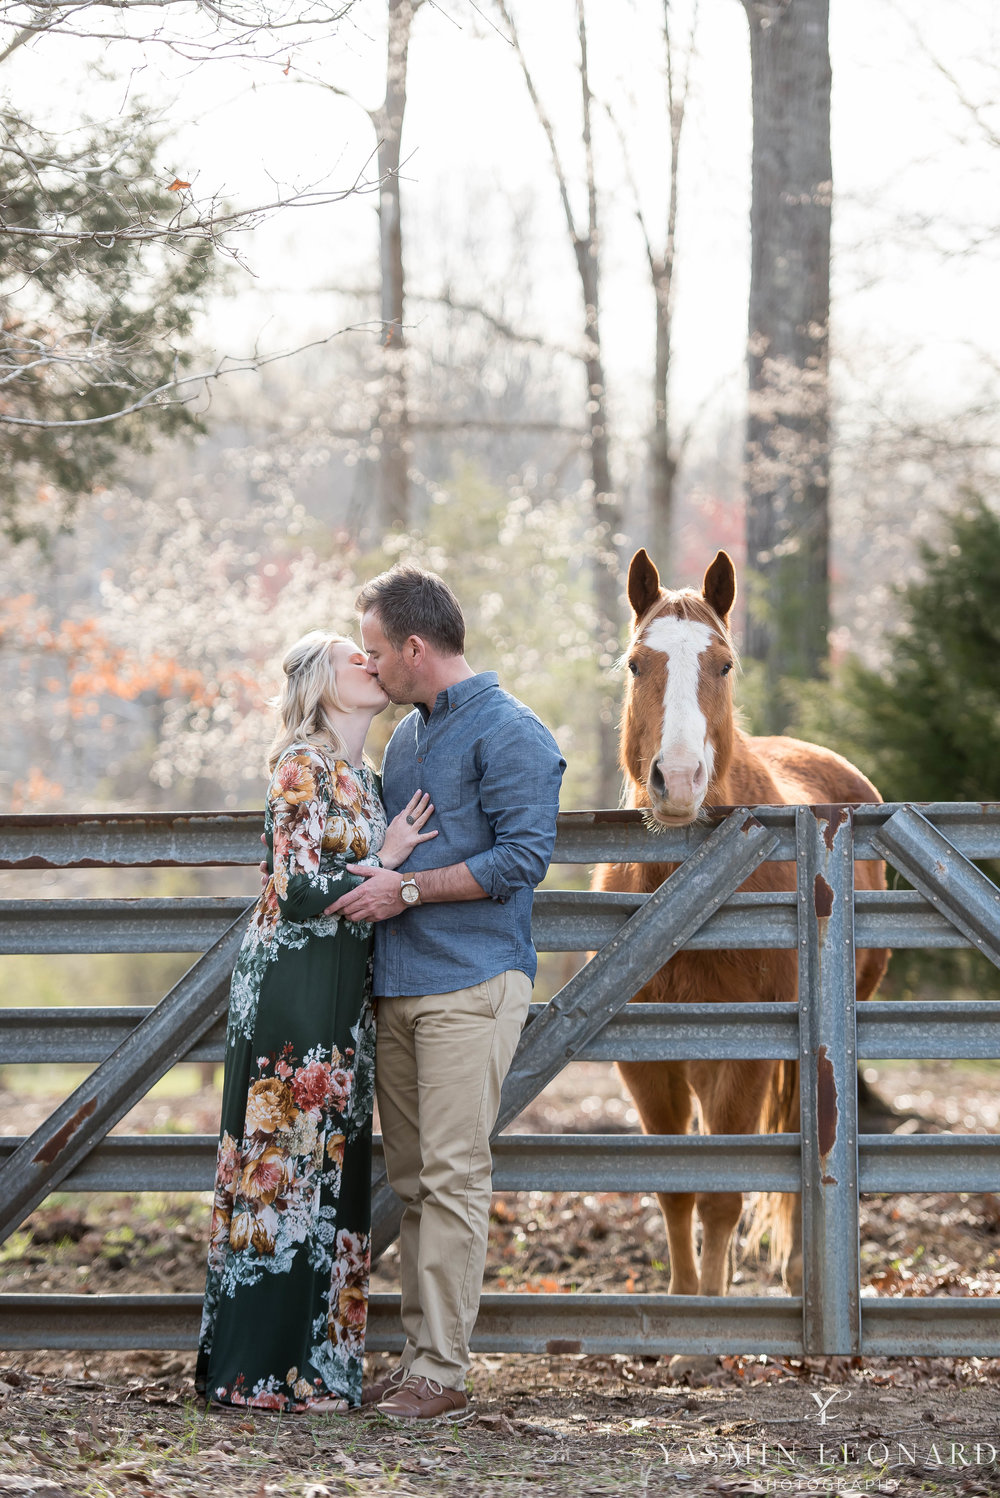 High Point Wedding Photographer - NC Wedding Photographer - Yasmin Leonard Photography - Engagement Poses - Engagement Ideas - Outdoor Engagement Session-20.jpg